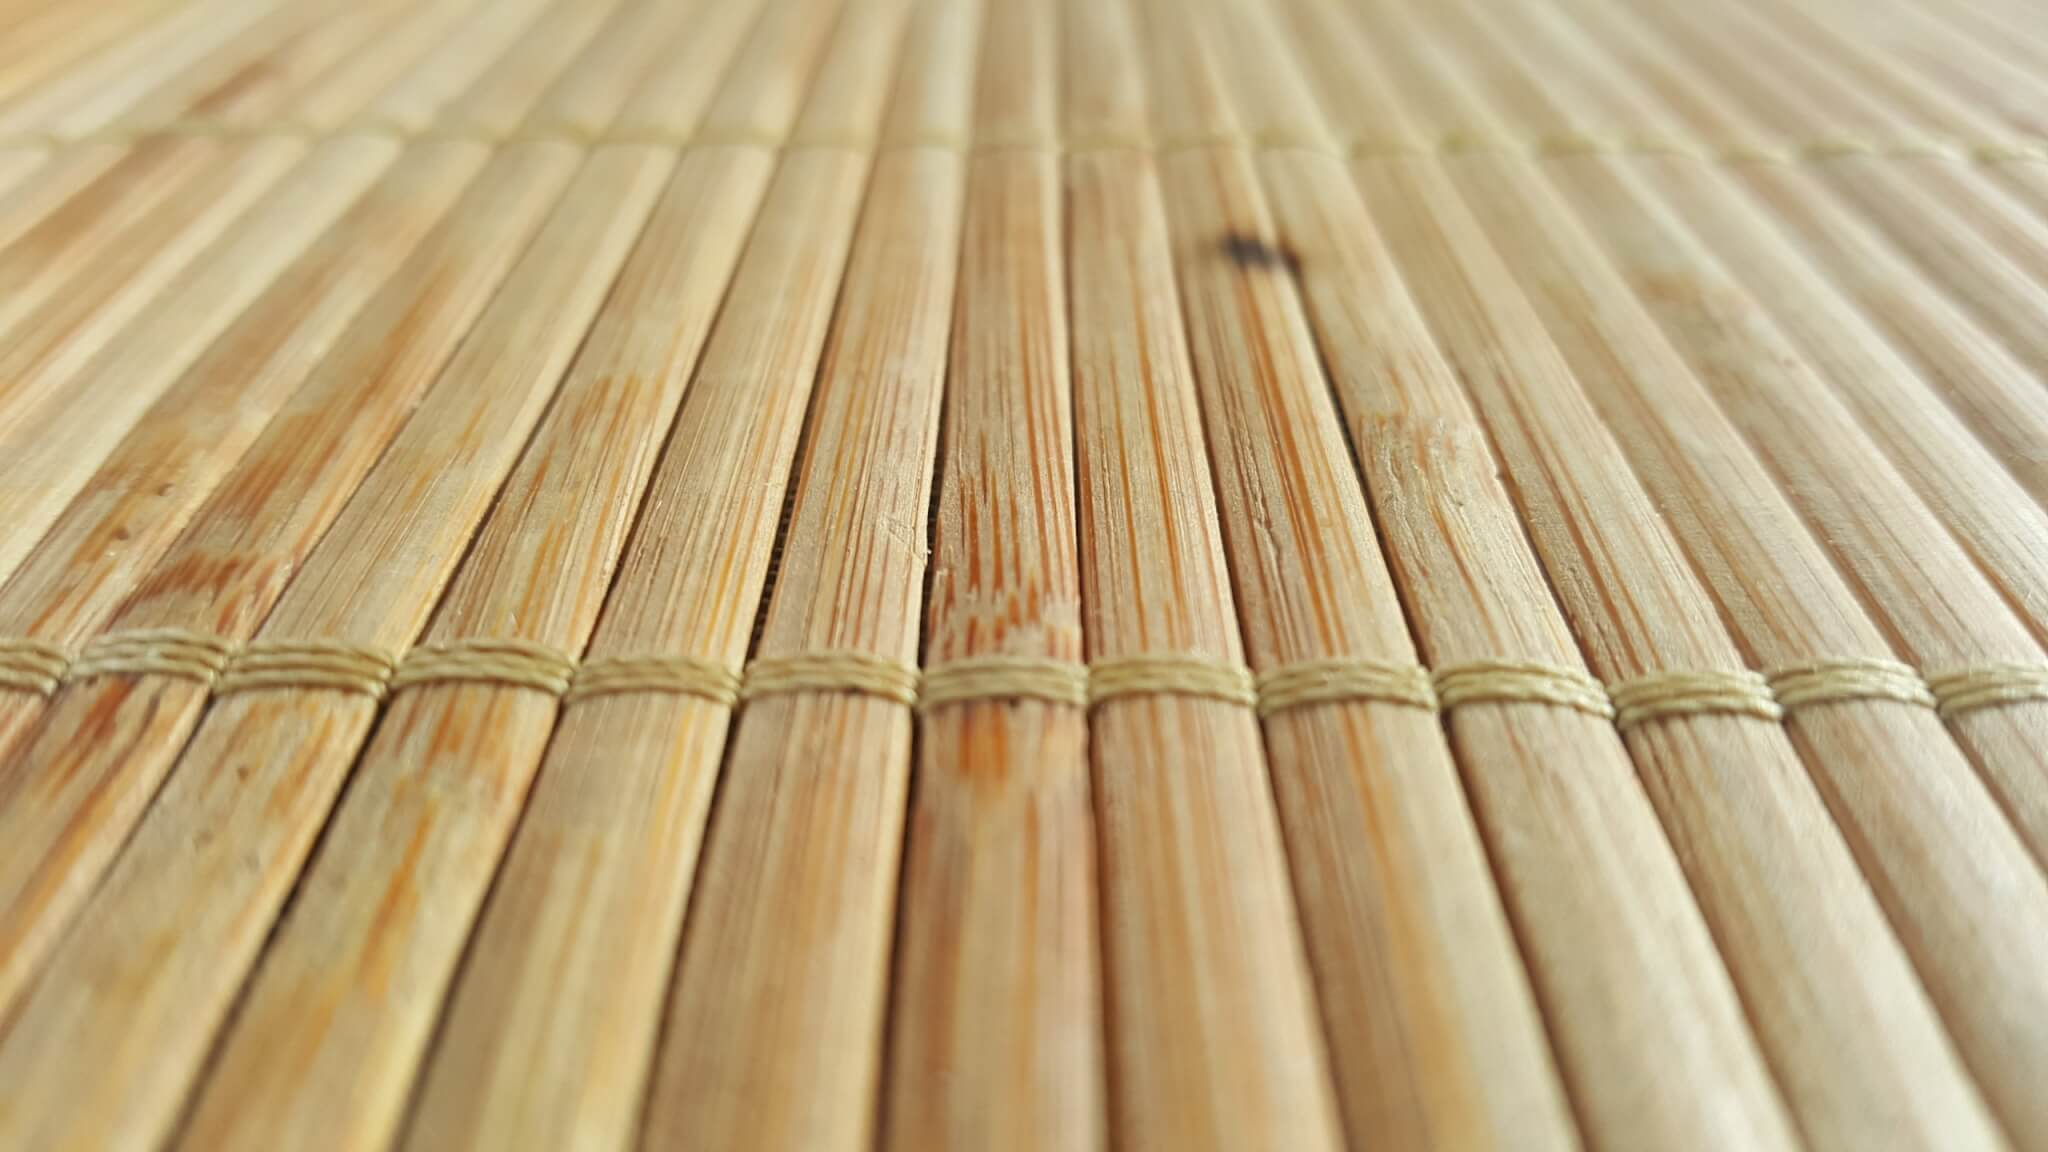 Make your floors eco-friendly by using sustainable materials like bamboo